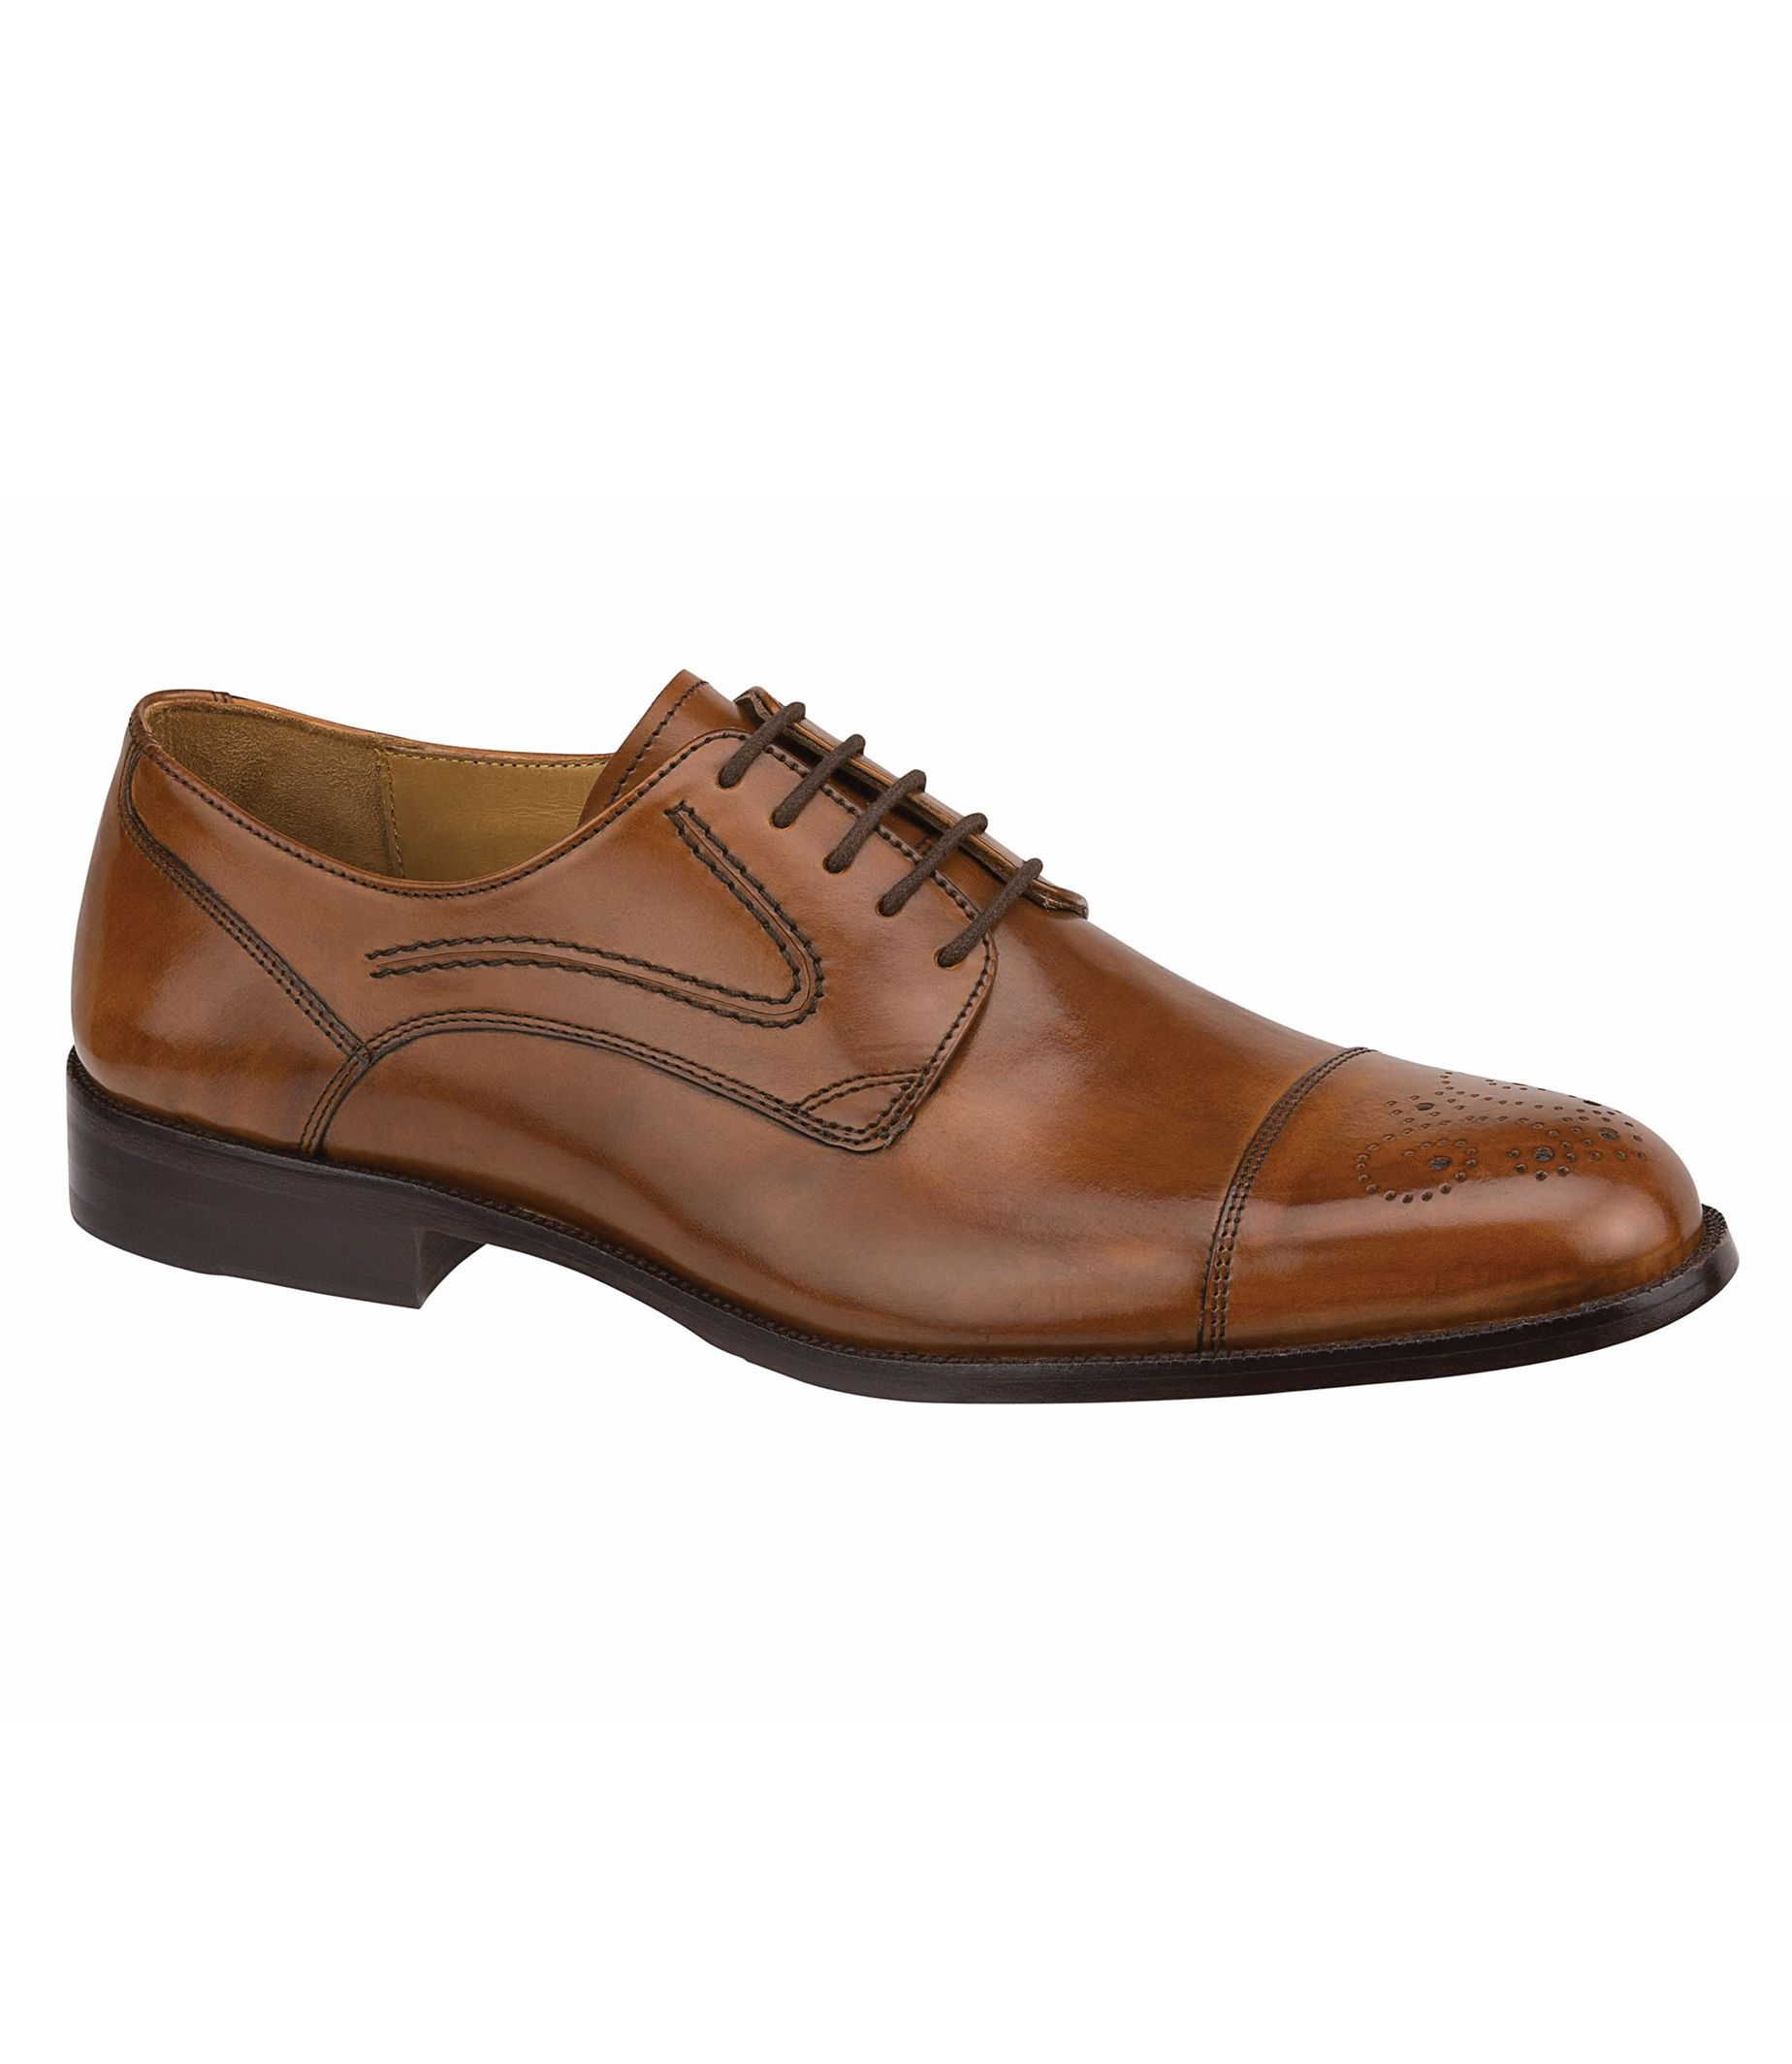 Stratton Cap Toe Shoe by Johnston and Murphy